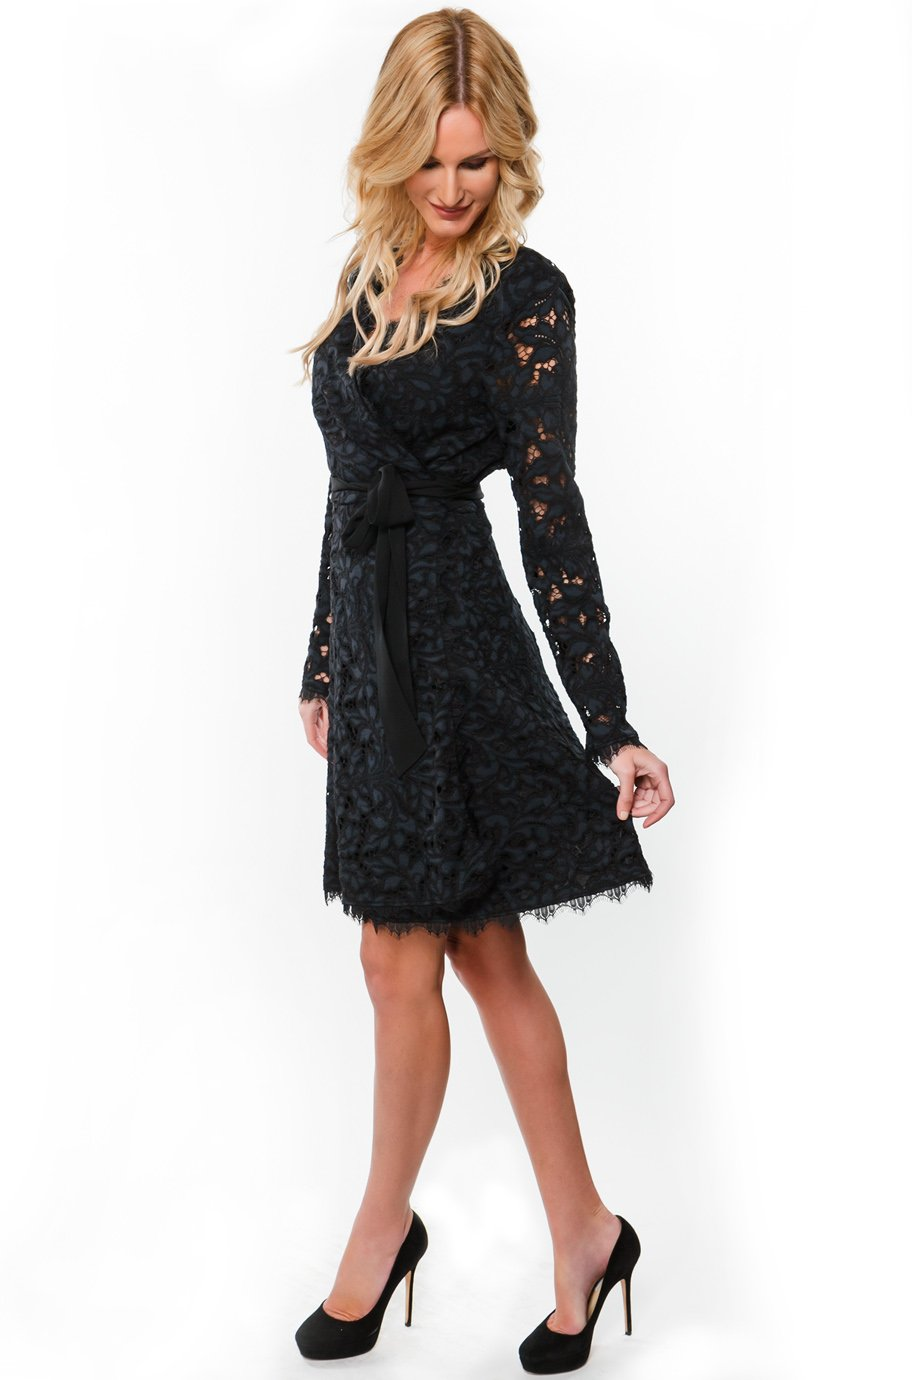 Diane von Furstenberg Black Lace Wrap Scalloped Trim Dress